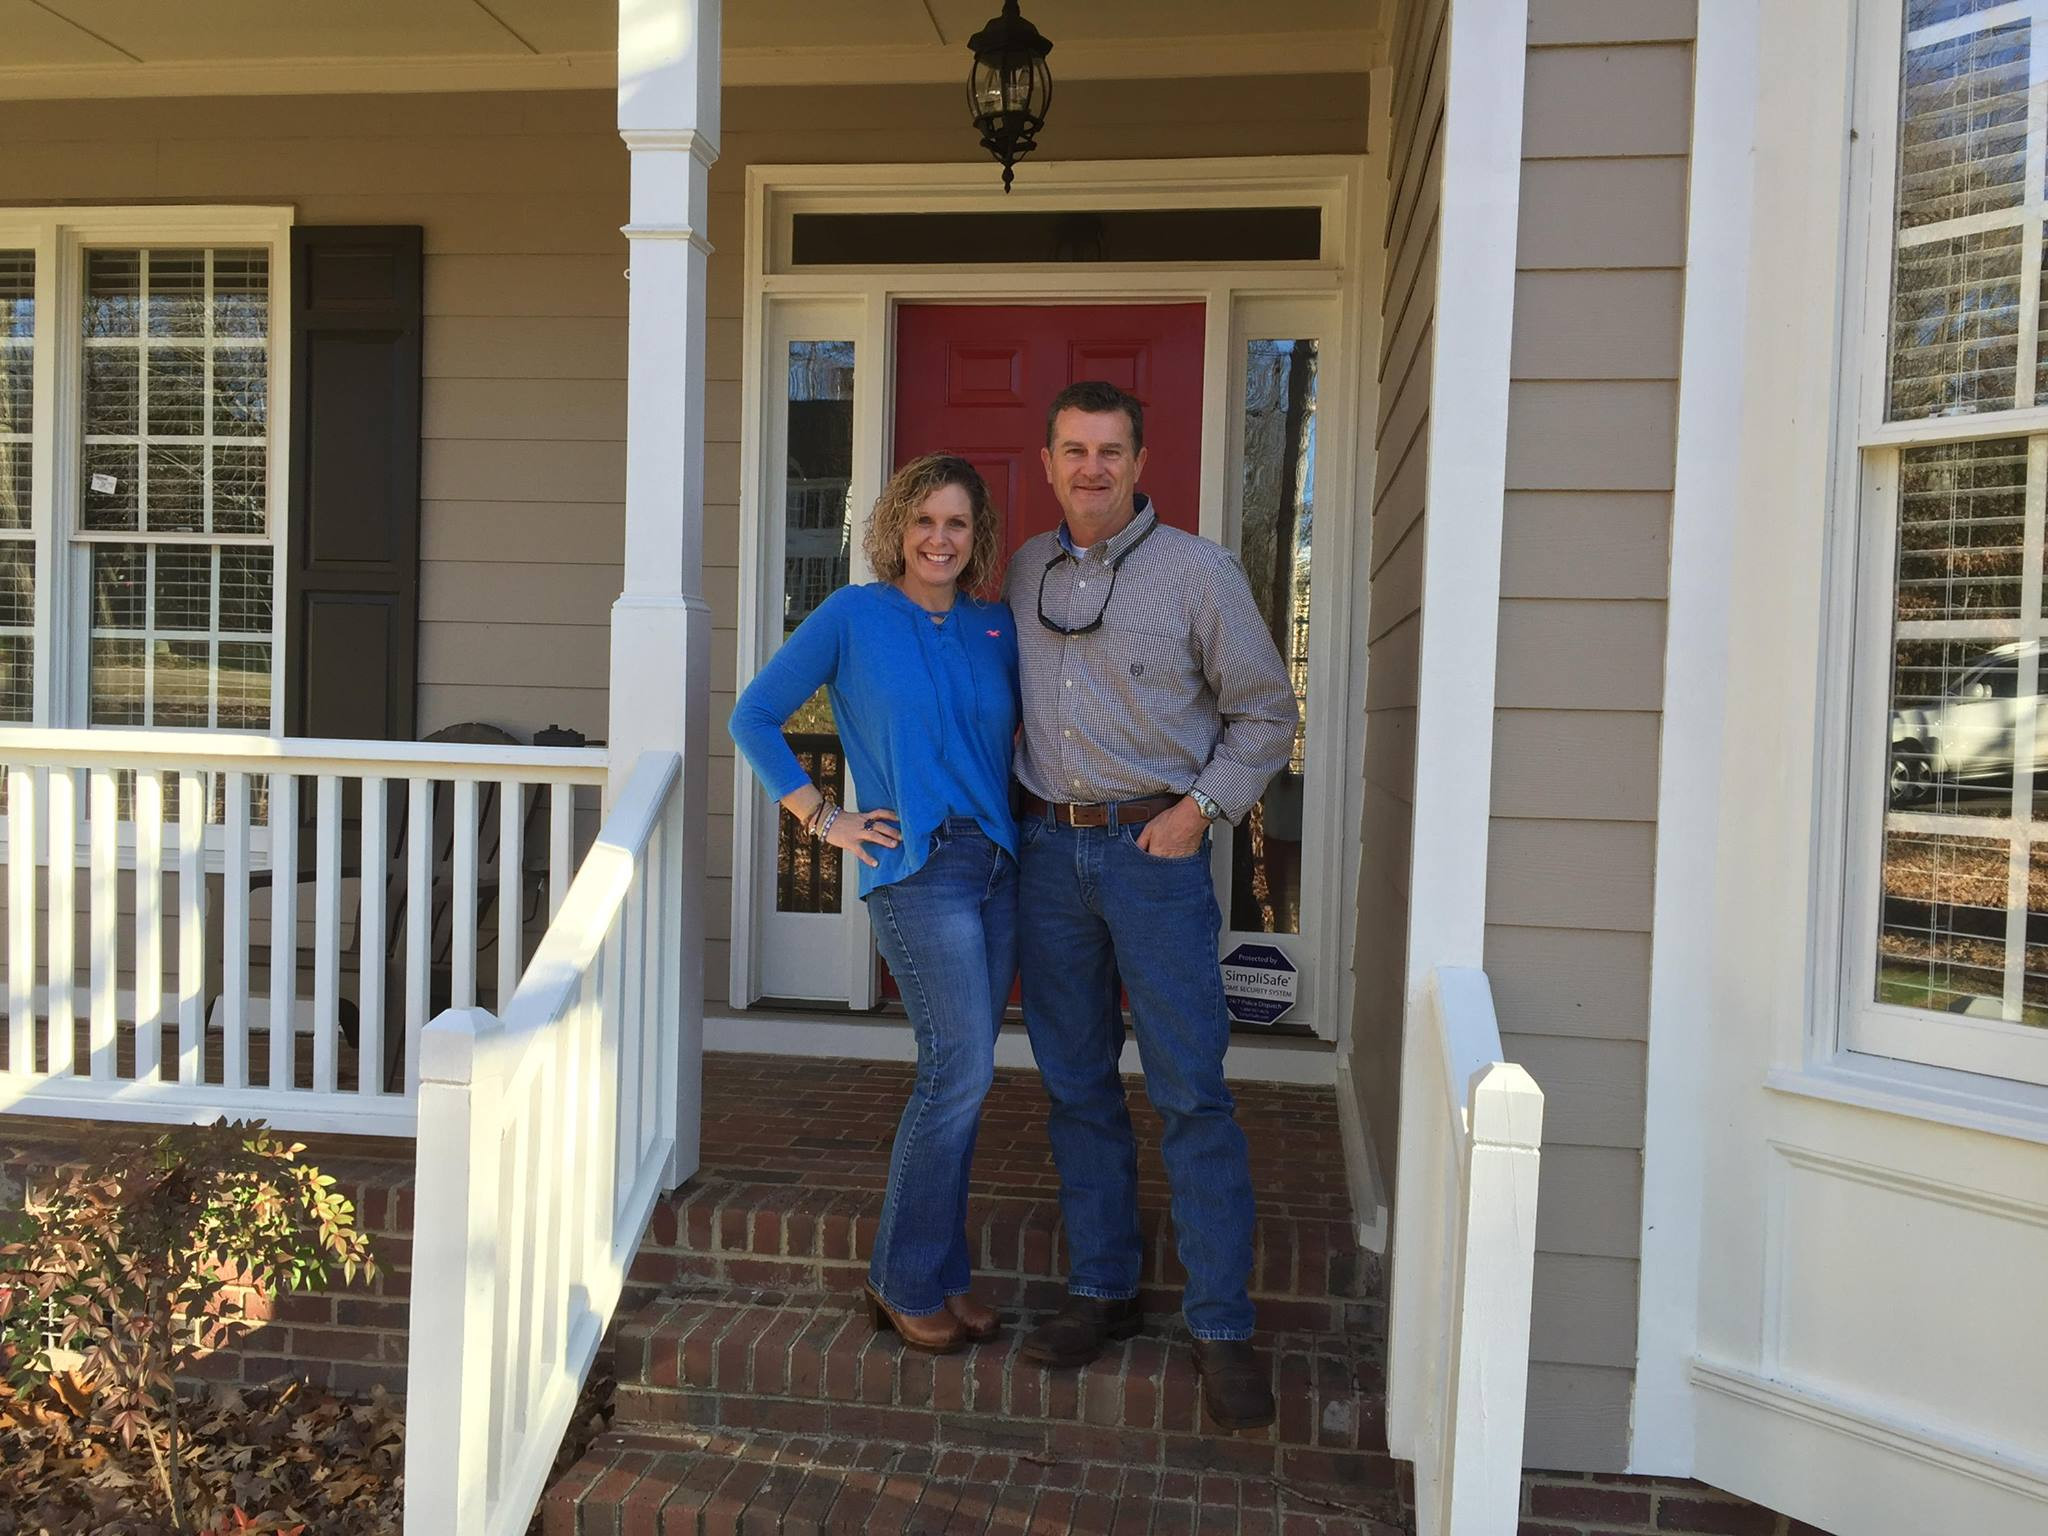 ogles hardwood flooring huntersville nc of just sold congrats to the wolletts ginger co with congratulations to our buyers michael and cindy on the purchase of their new home we are so happy that you are in a gorgeous home before the holidays